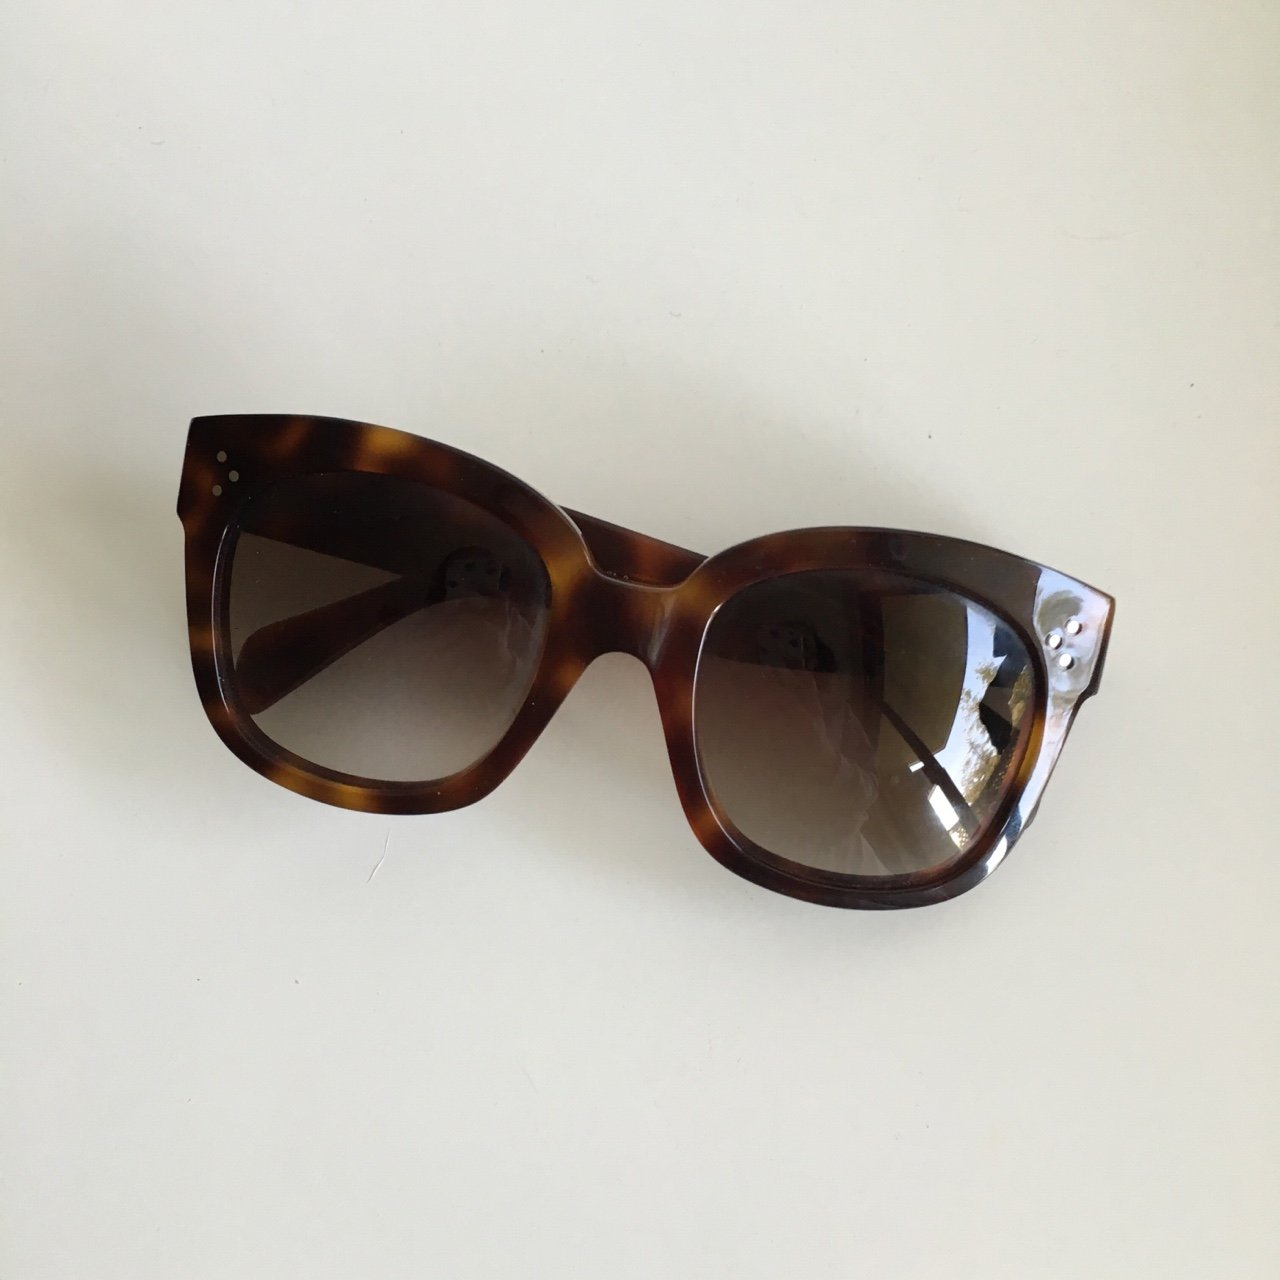 7089ded0a07 Celine New Audrey Sunglasses in Tortoise Shell. Comes with - Depop